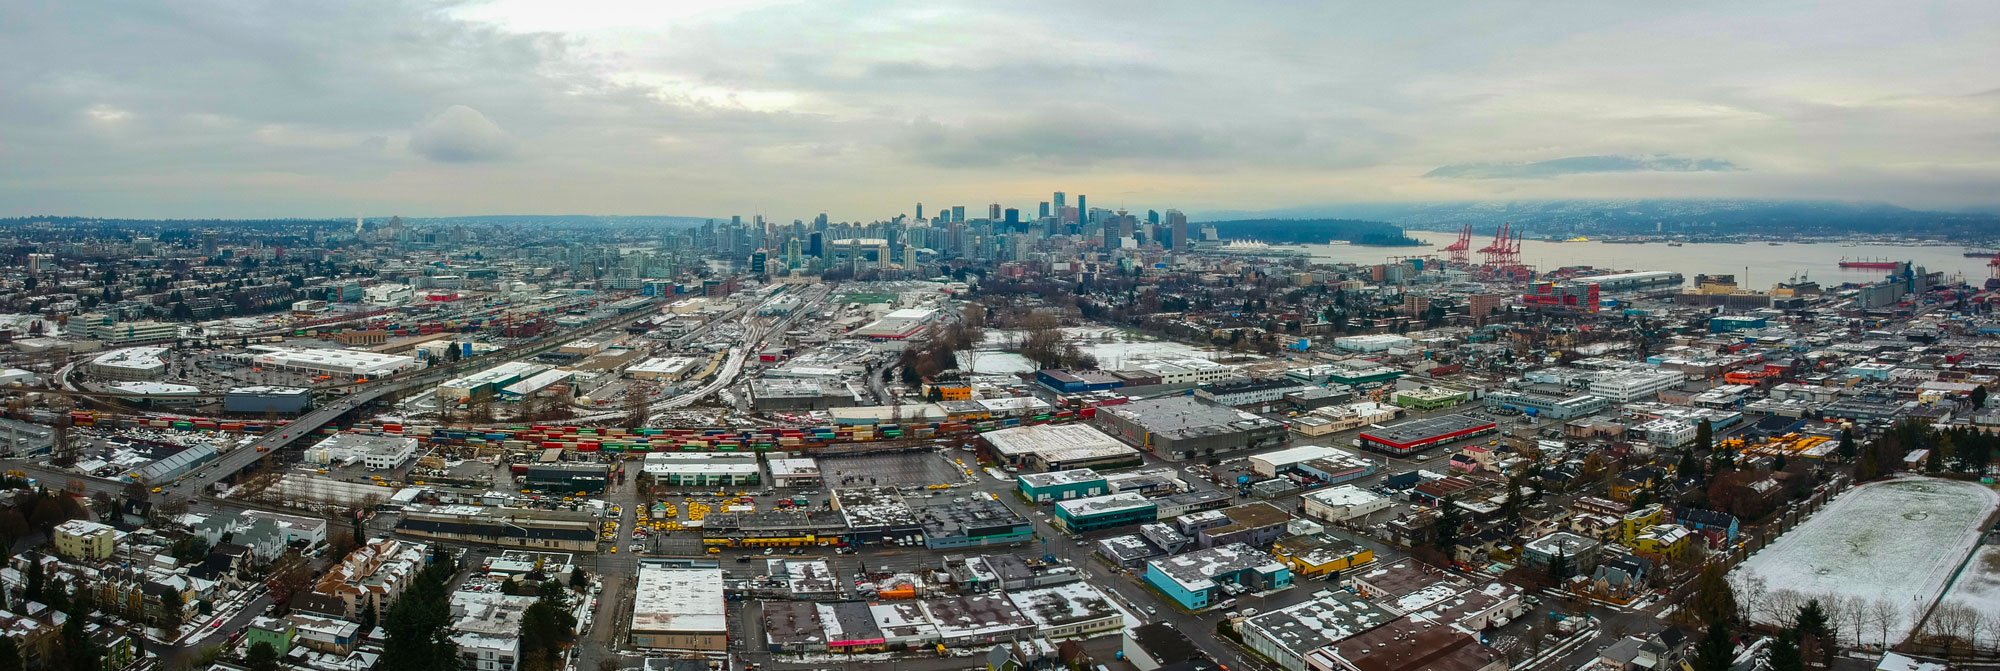 A winter day in Vancouver. Today I flew the drone, shot it up 120 meters hovering just above our home and took this panoramic view. Happy holidays everyone.